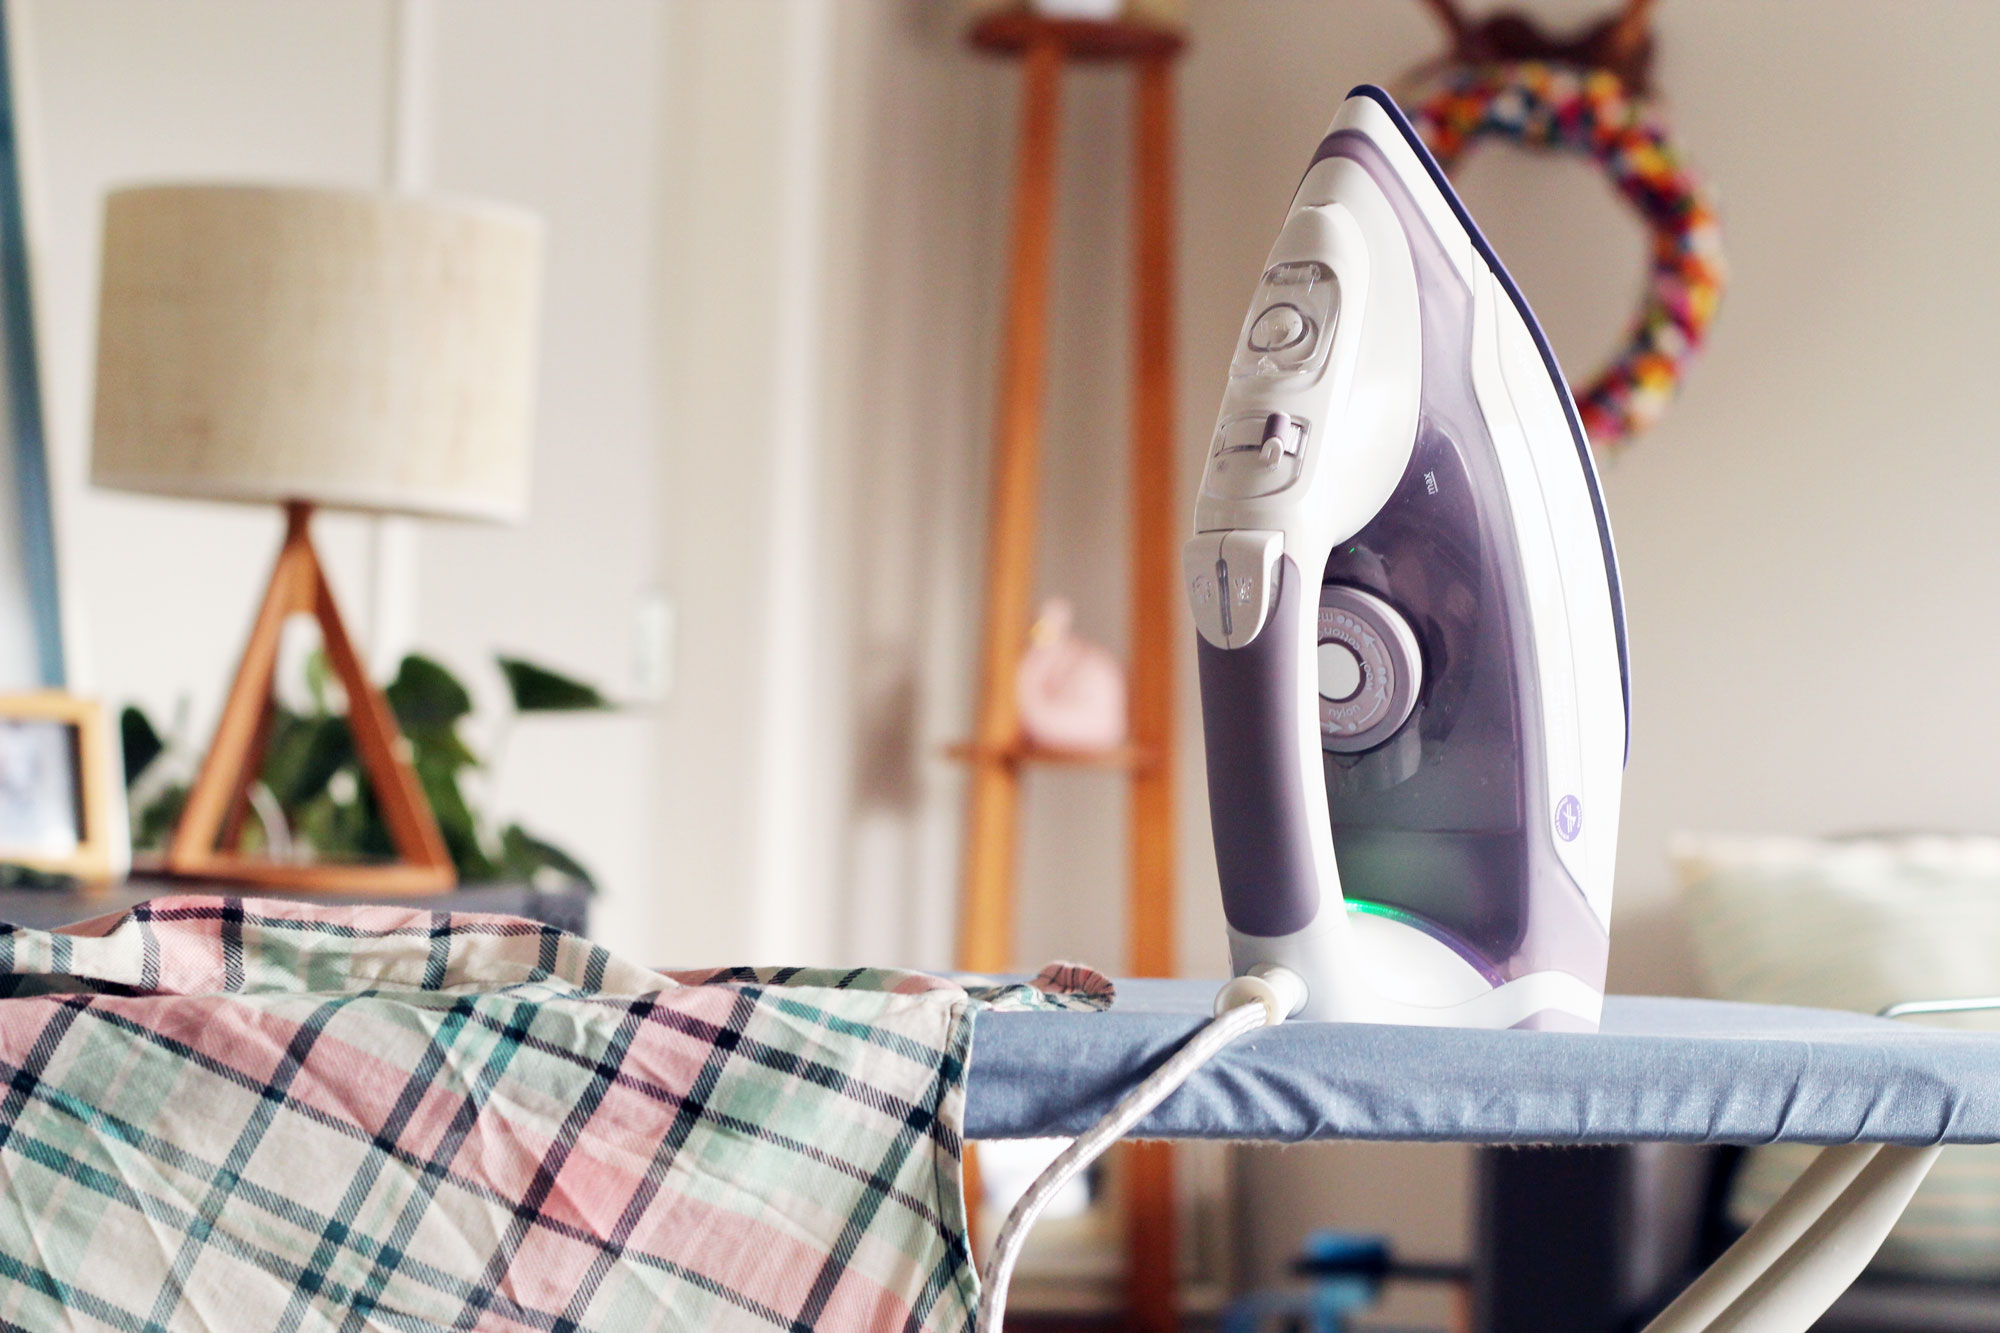 How to make Ironing a little more enjoyable